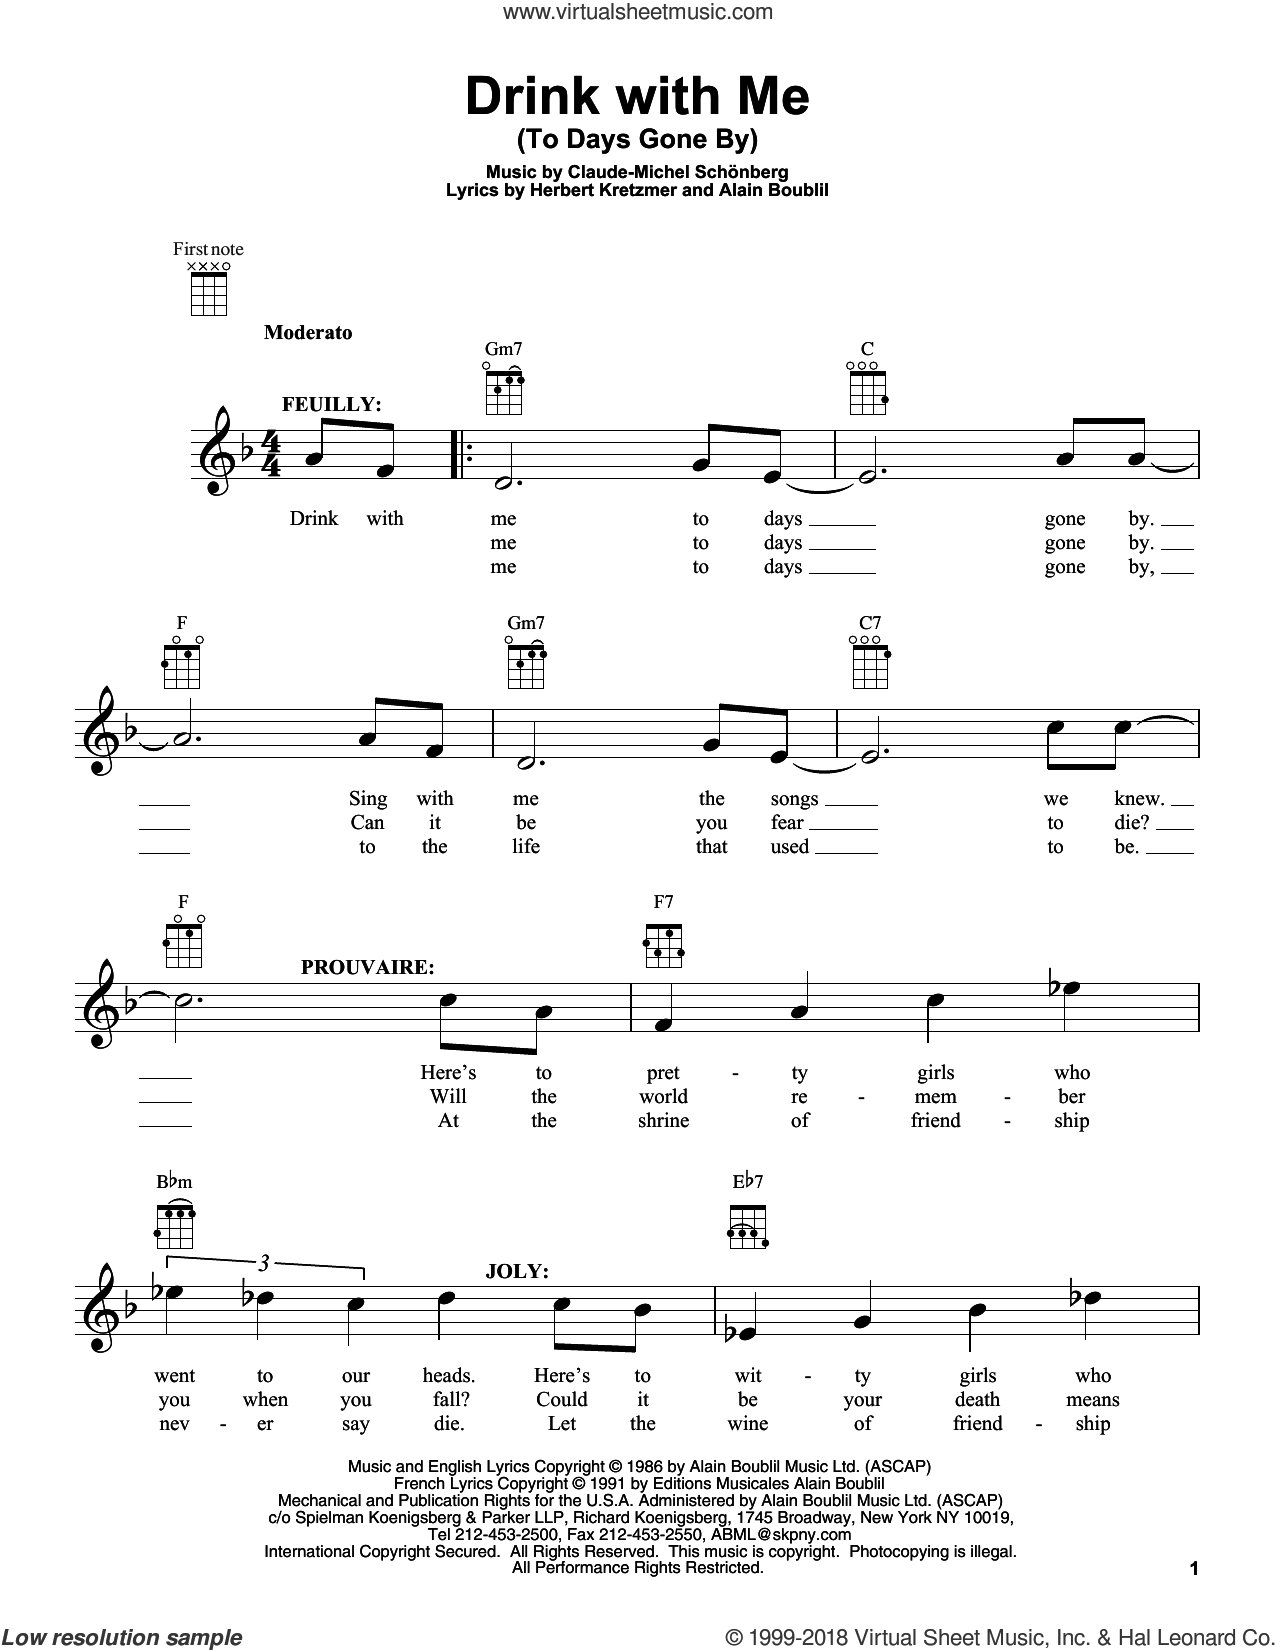 Drink With Me (To Days Gone By) sheet music for ukulele by Claude-Michel Schonberg